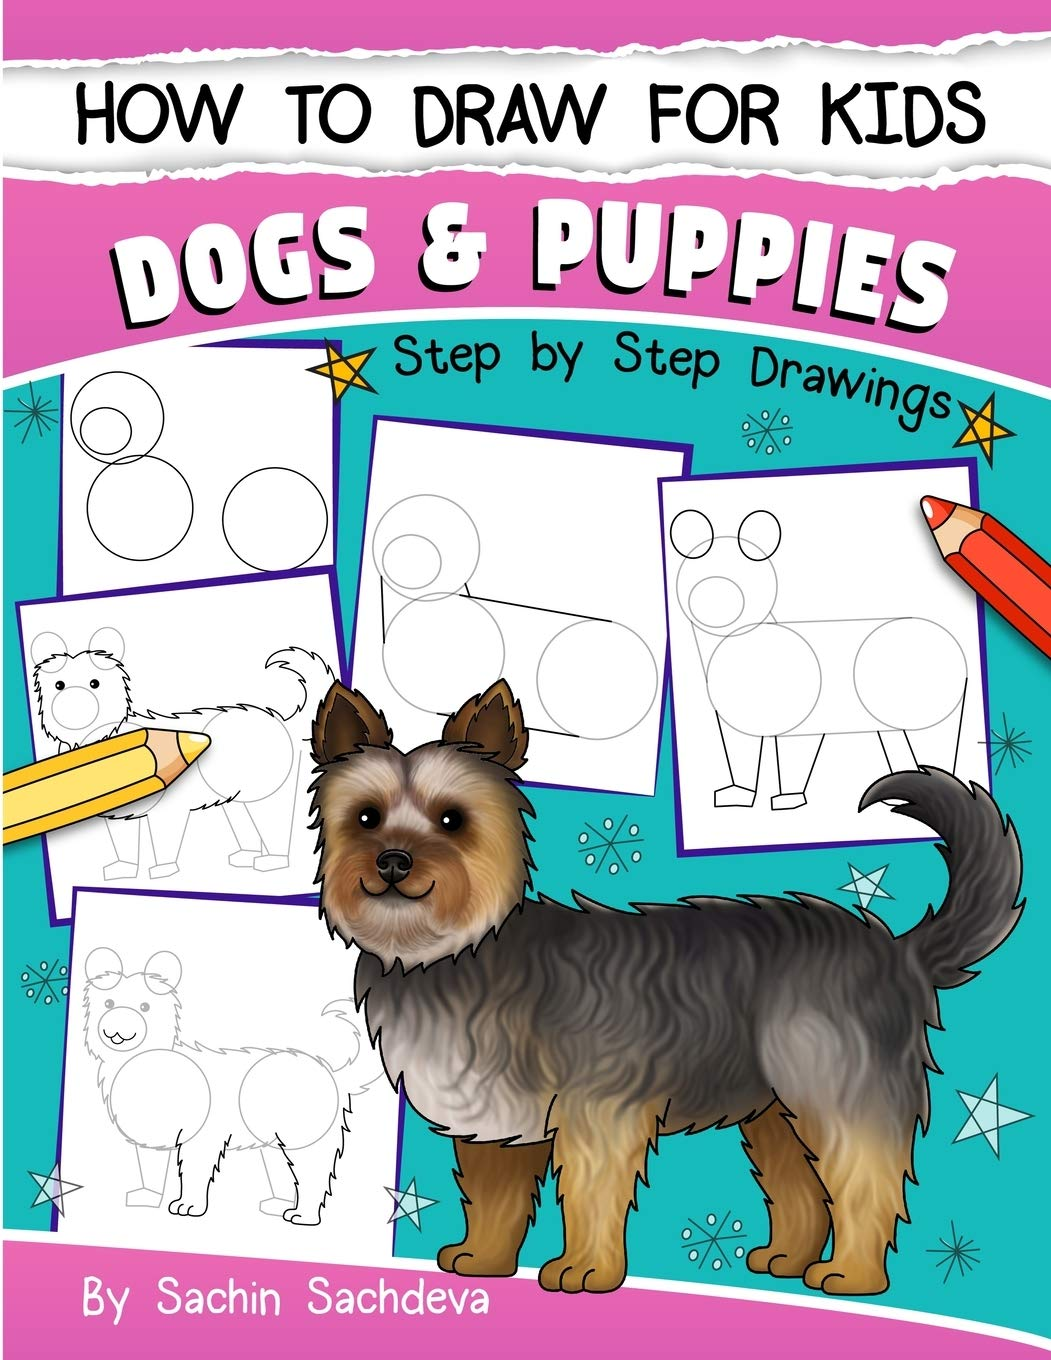 How To Draw For Kids Dogs Puppies An Easy Step By Step Guide